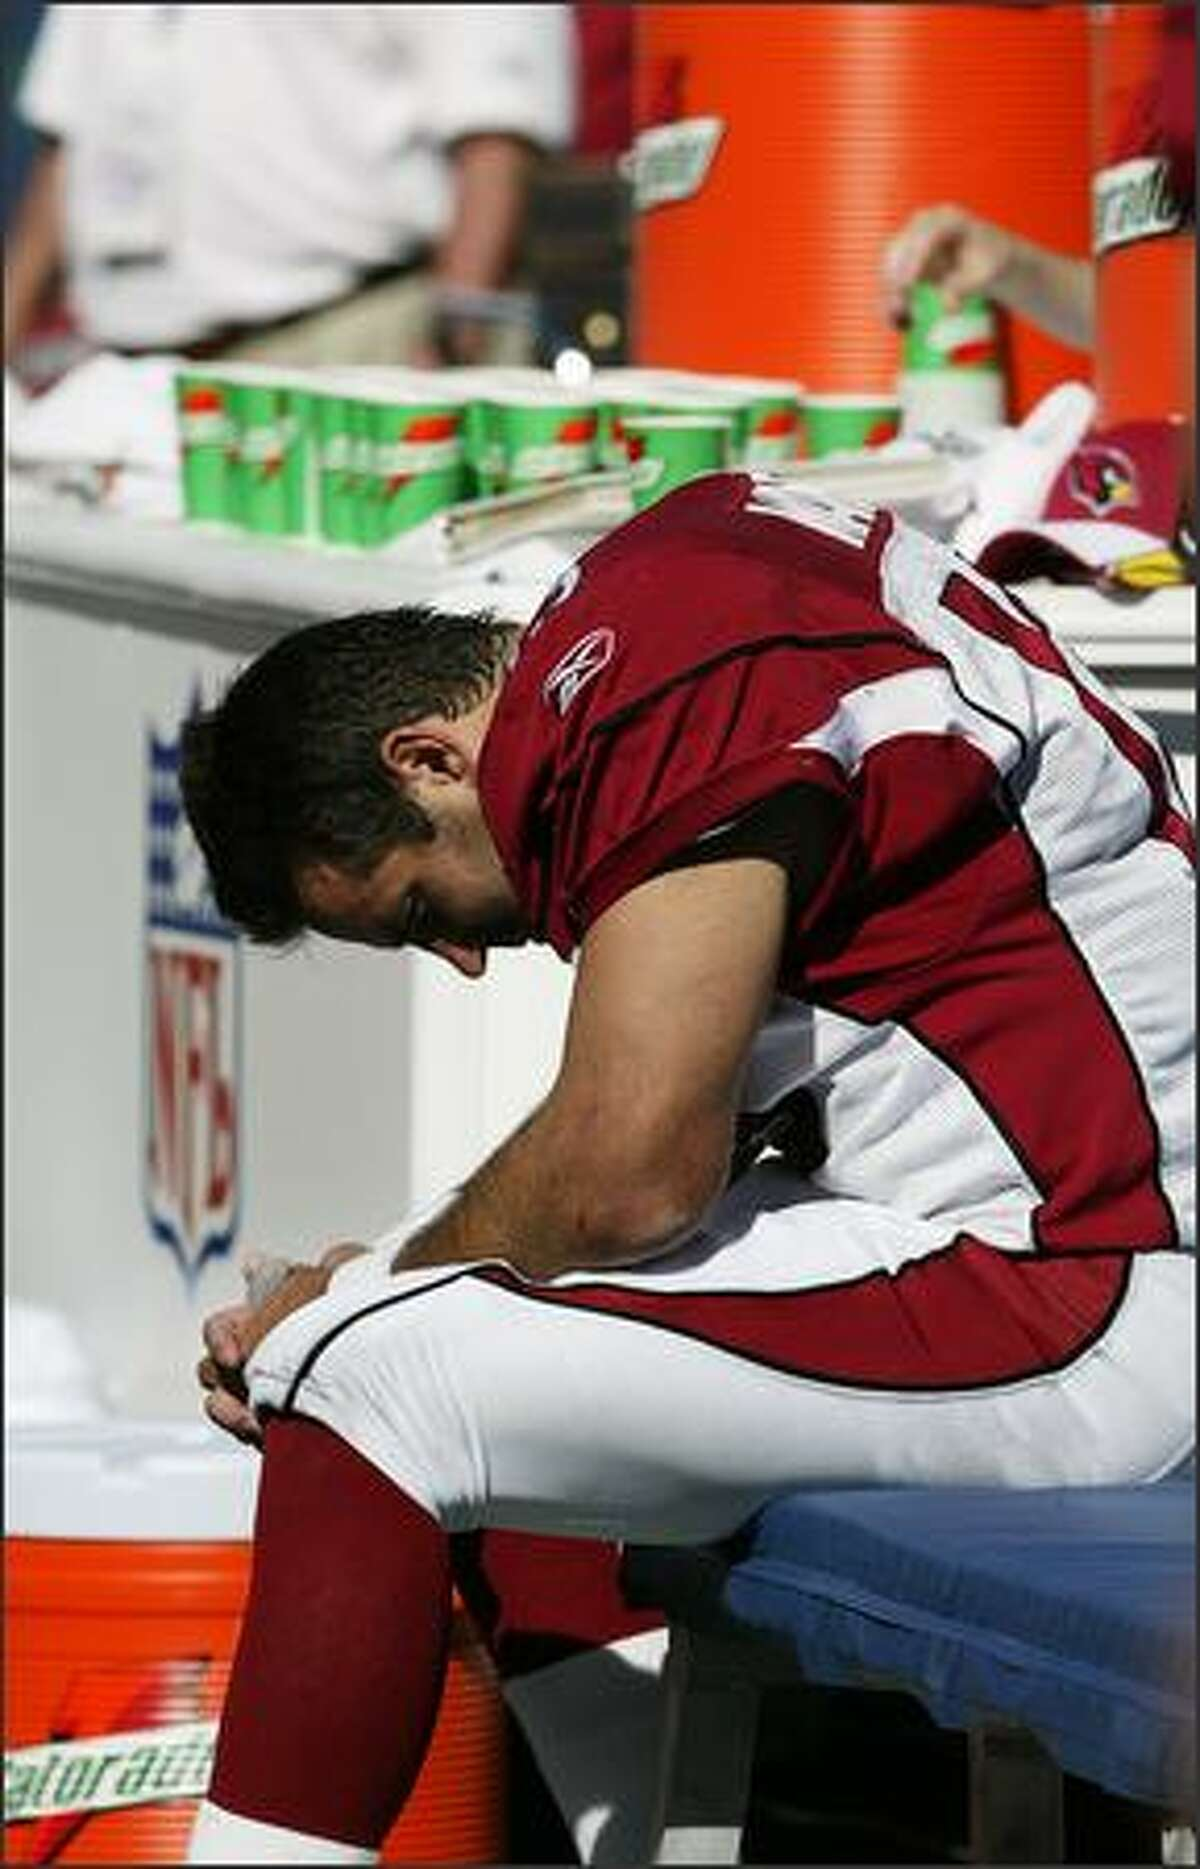 Arizona Cardinals quarterback Kurt Warner sits on the sidelines after suffering a groin injury during second quarter action against the Seahawks.